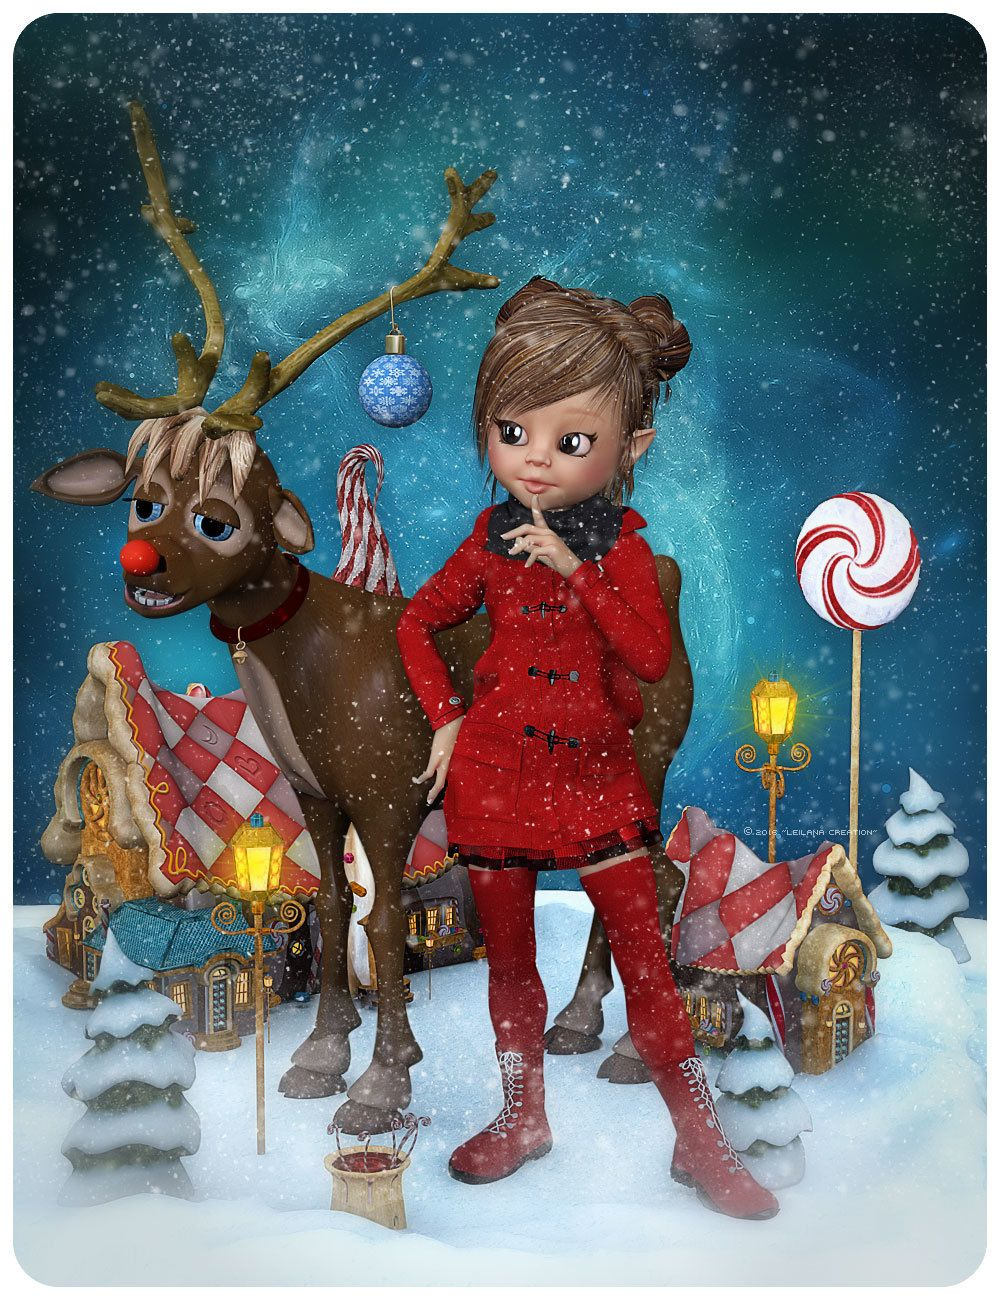 Anibell and the XmasTown *~ by Leilana #leilana #renderosity